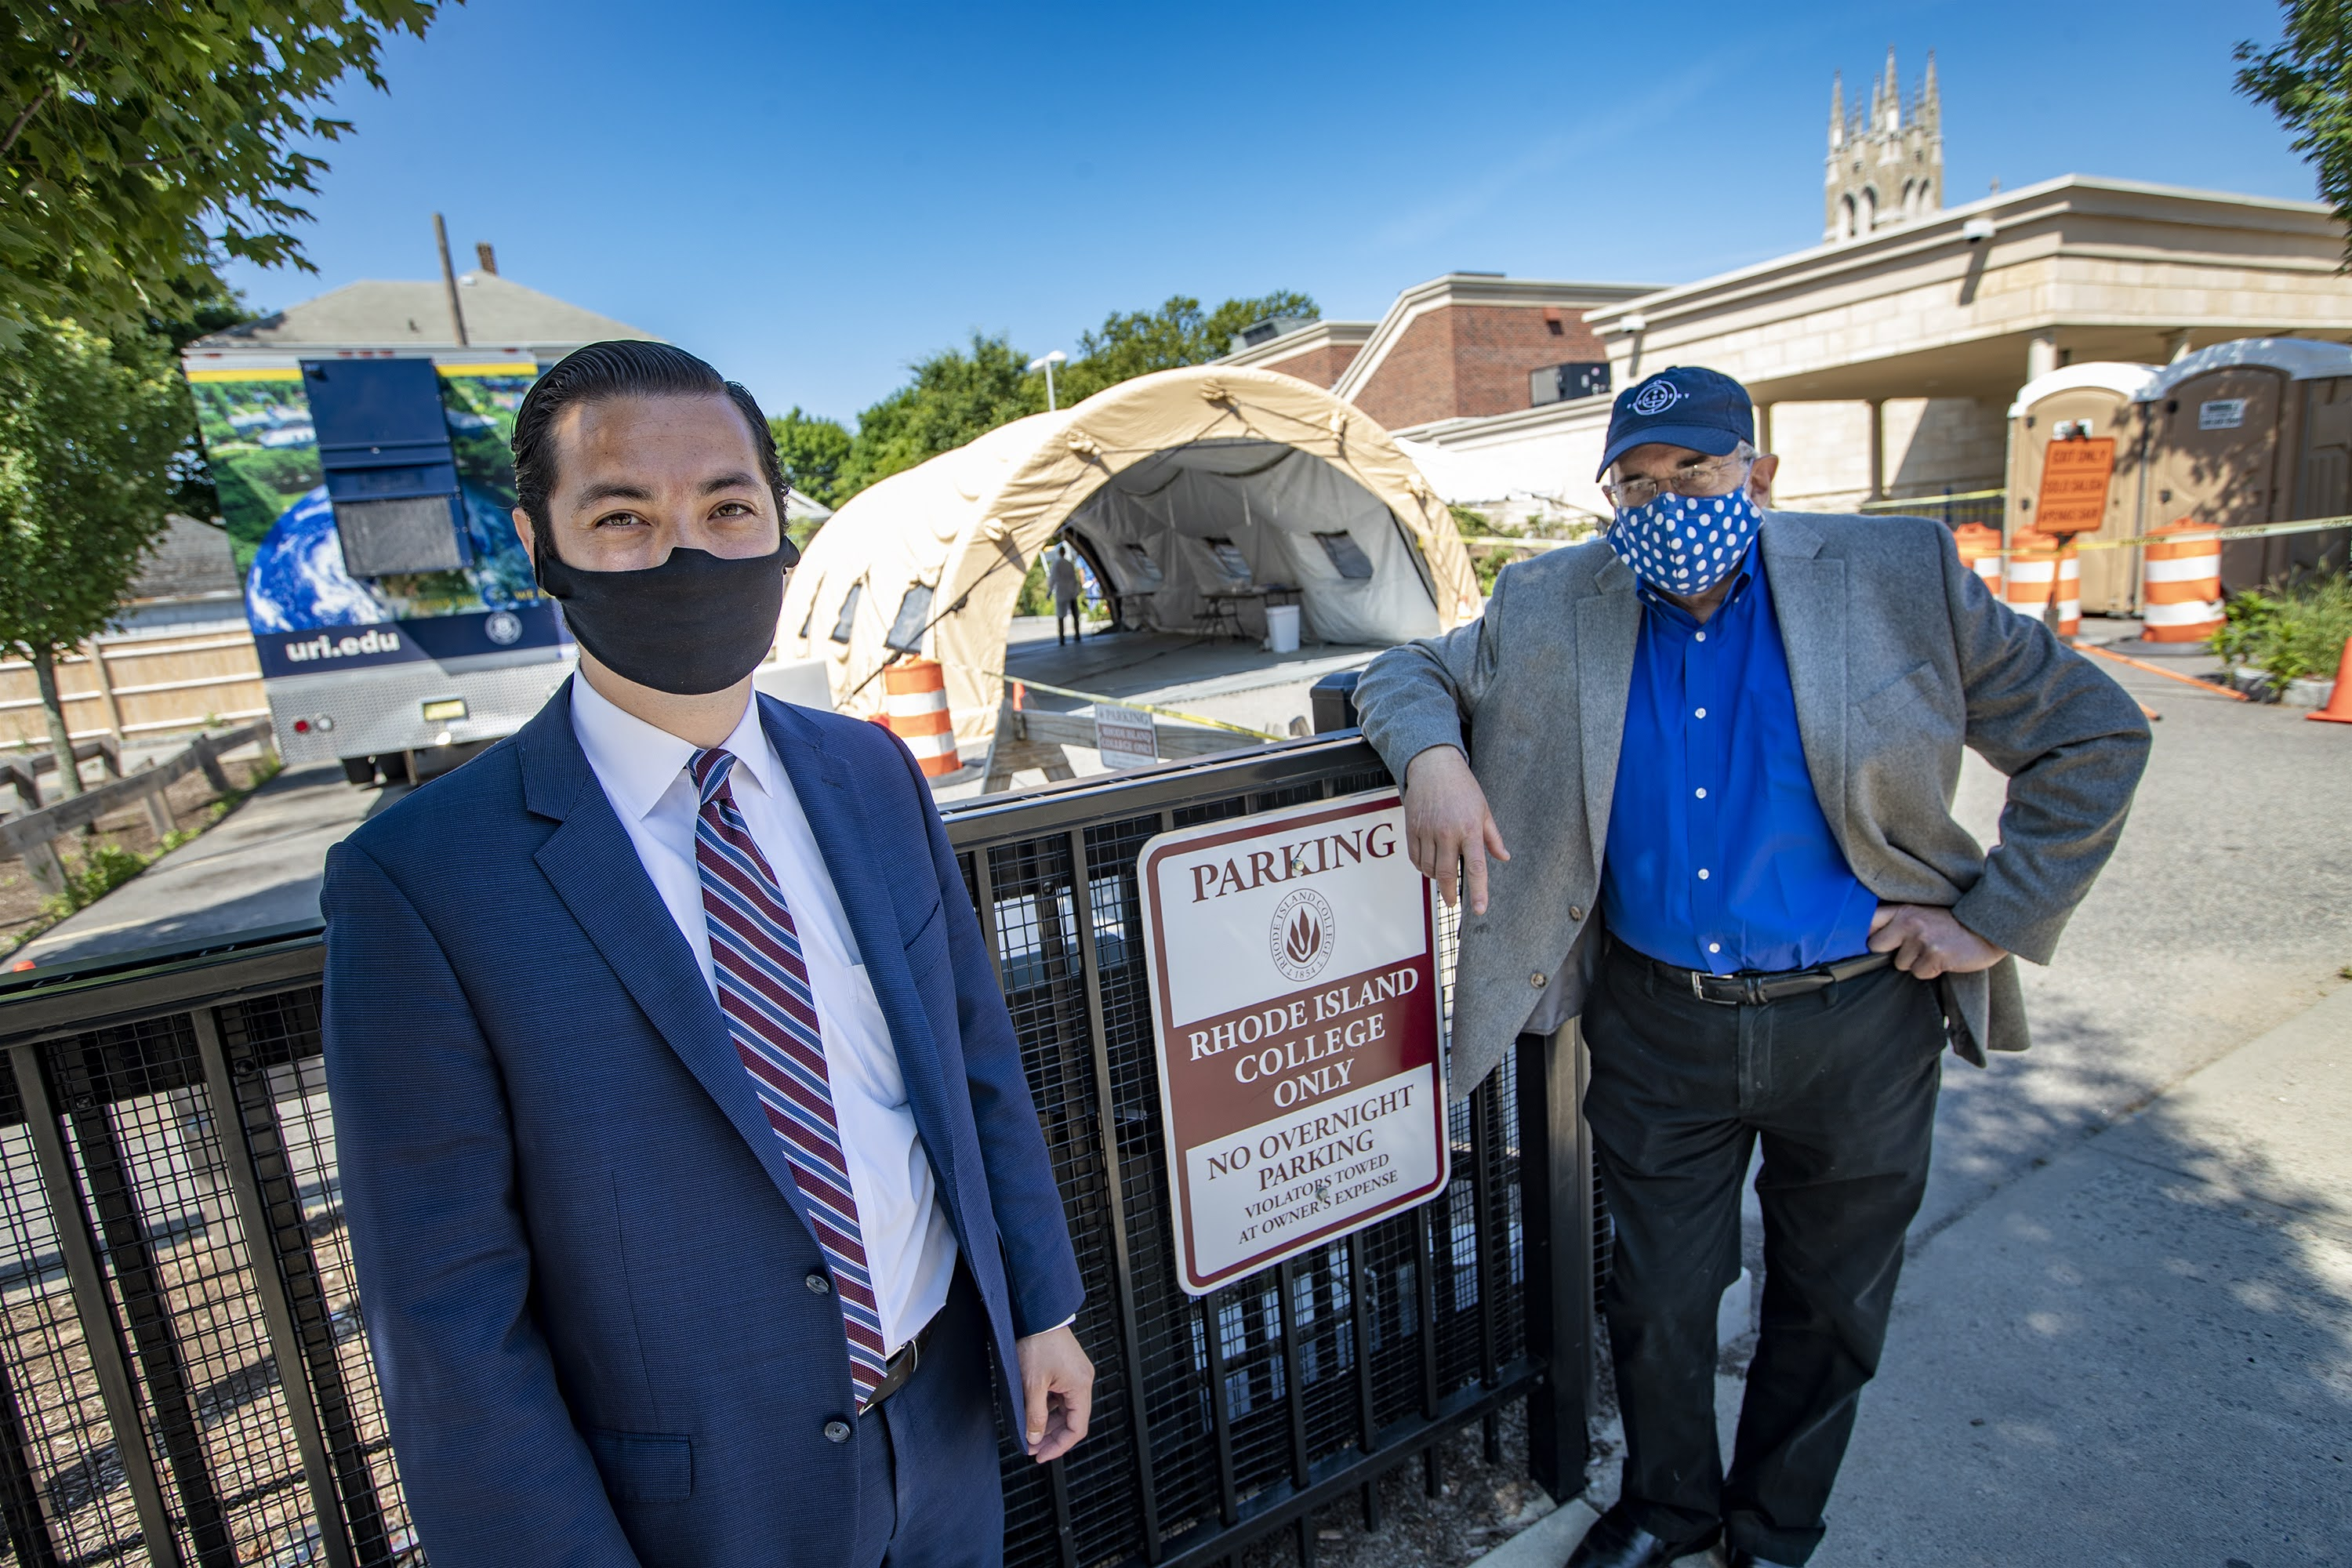 Central Falls Mayor James Diossa, left, and Dr. Michael Fine stand in front of the Rhode Island College walk-up testing site in Central Falls. (Jesse Costa/WBUR)